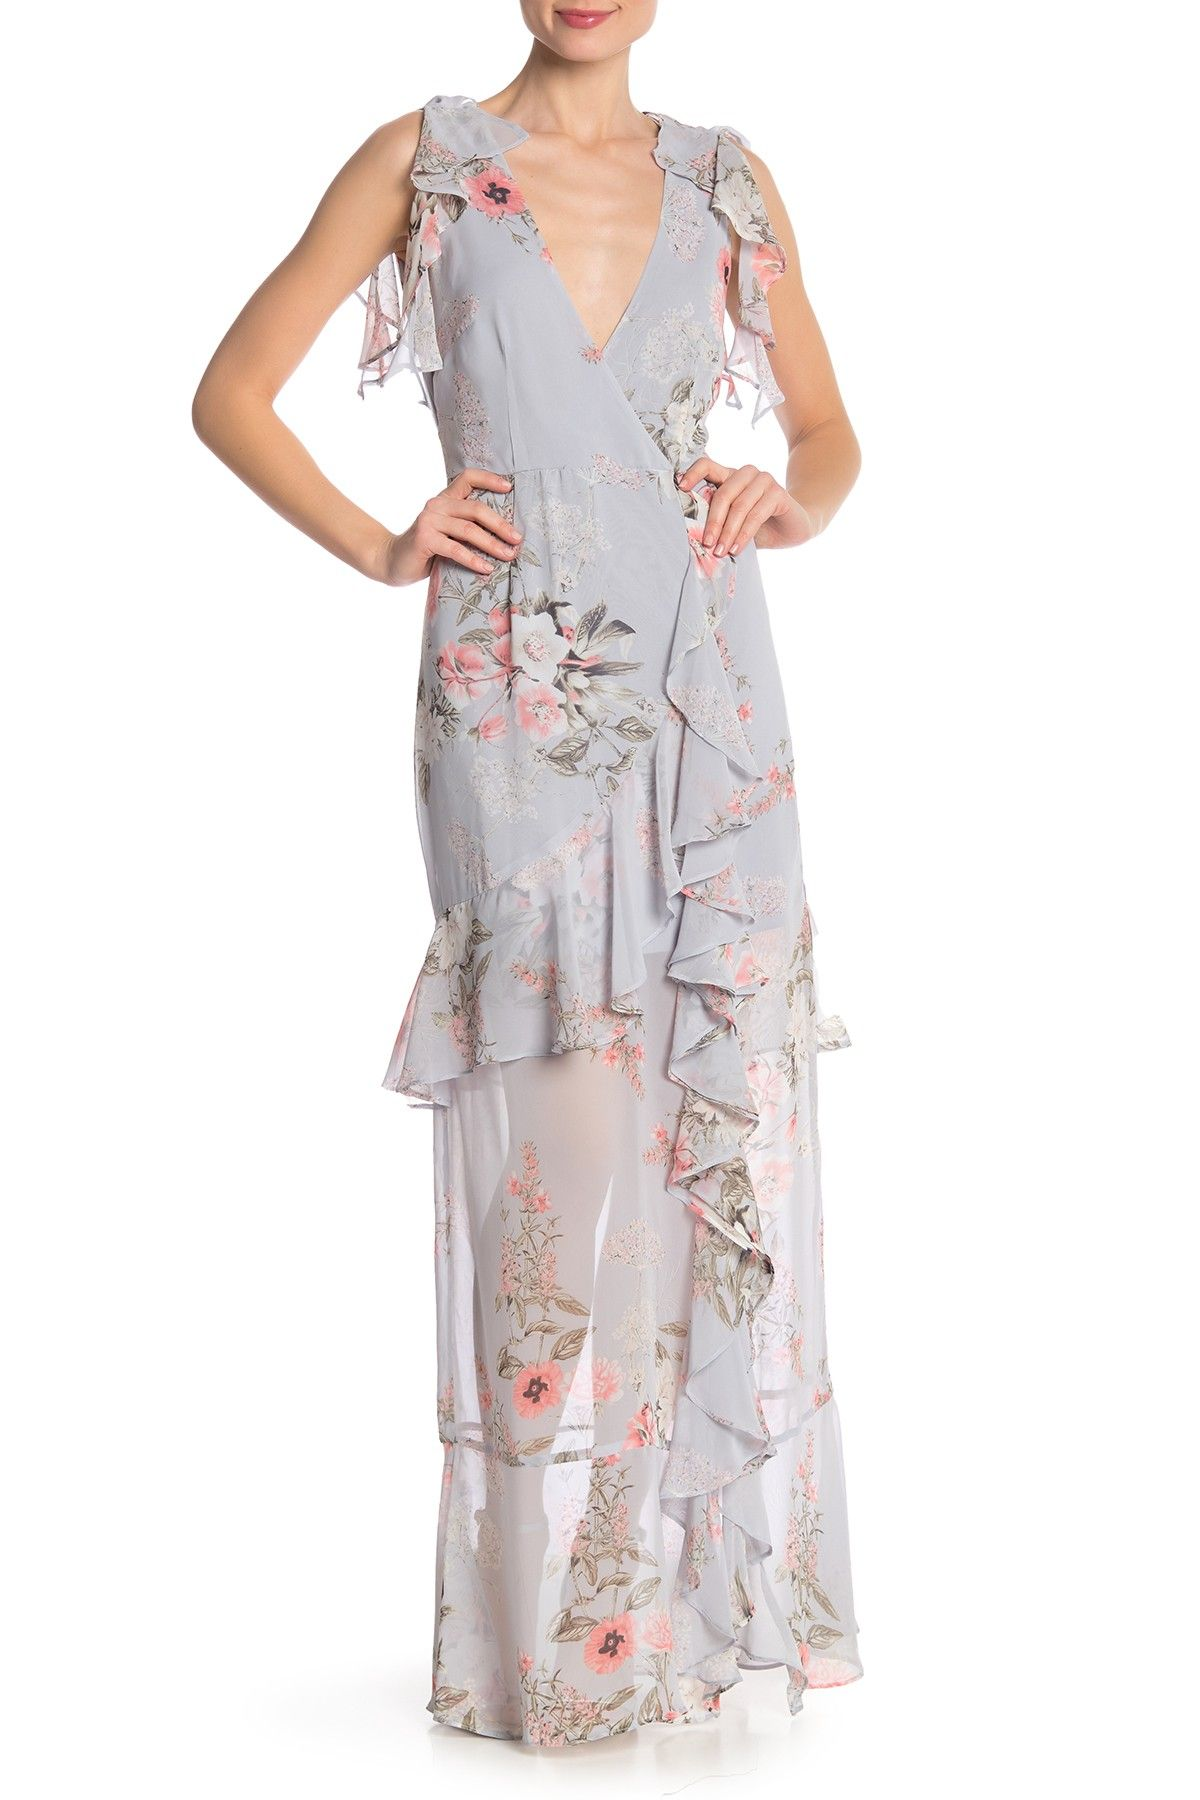 7430751a8e6 Floral Ruffle Maxi Dress by ONE ONE SIX on  nordstrom rack